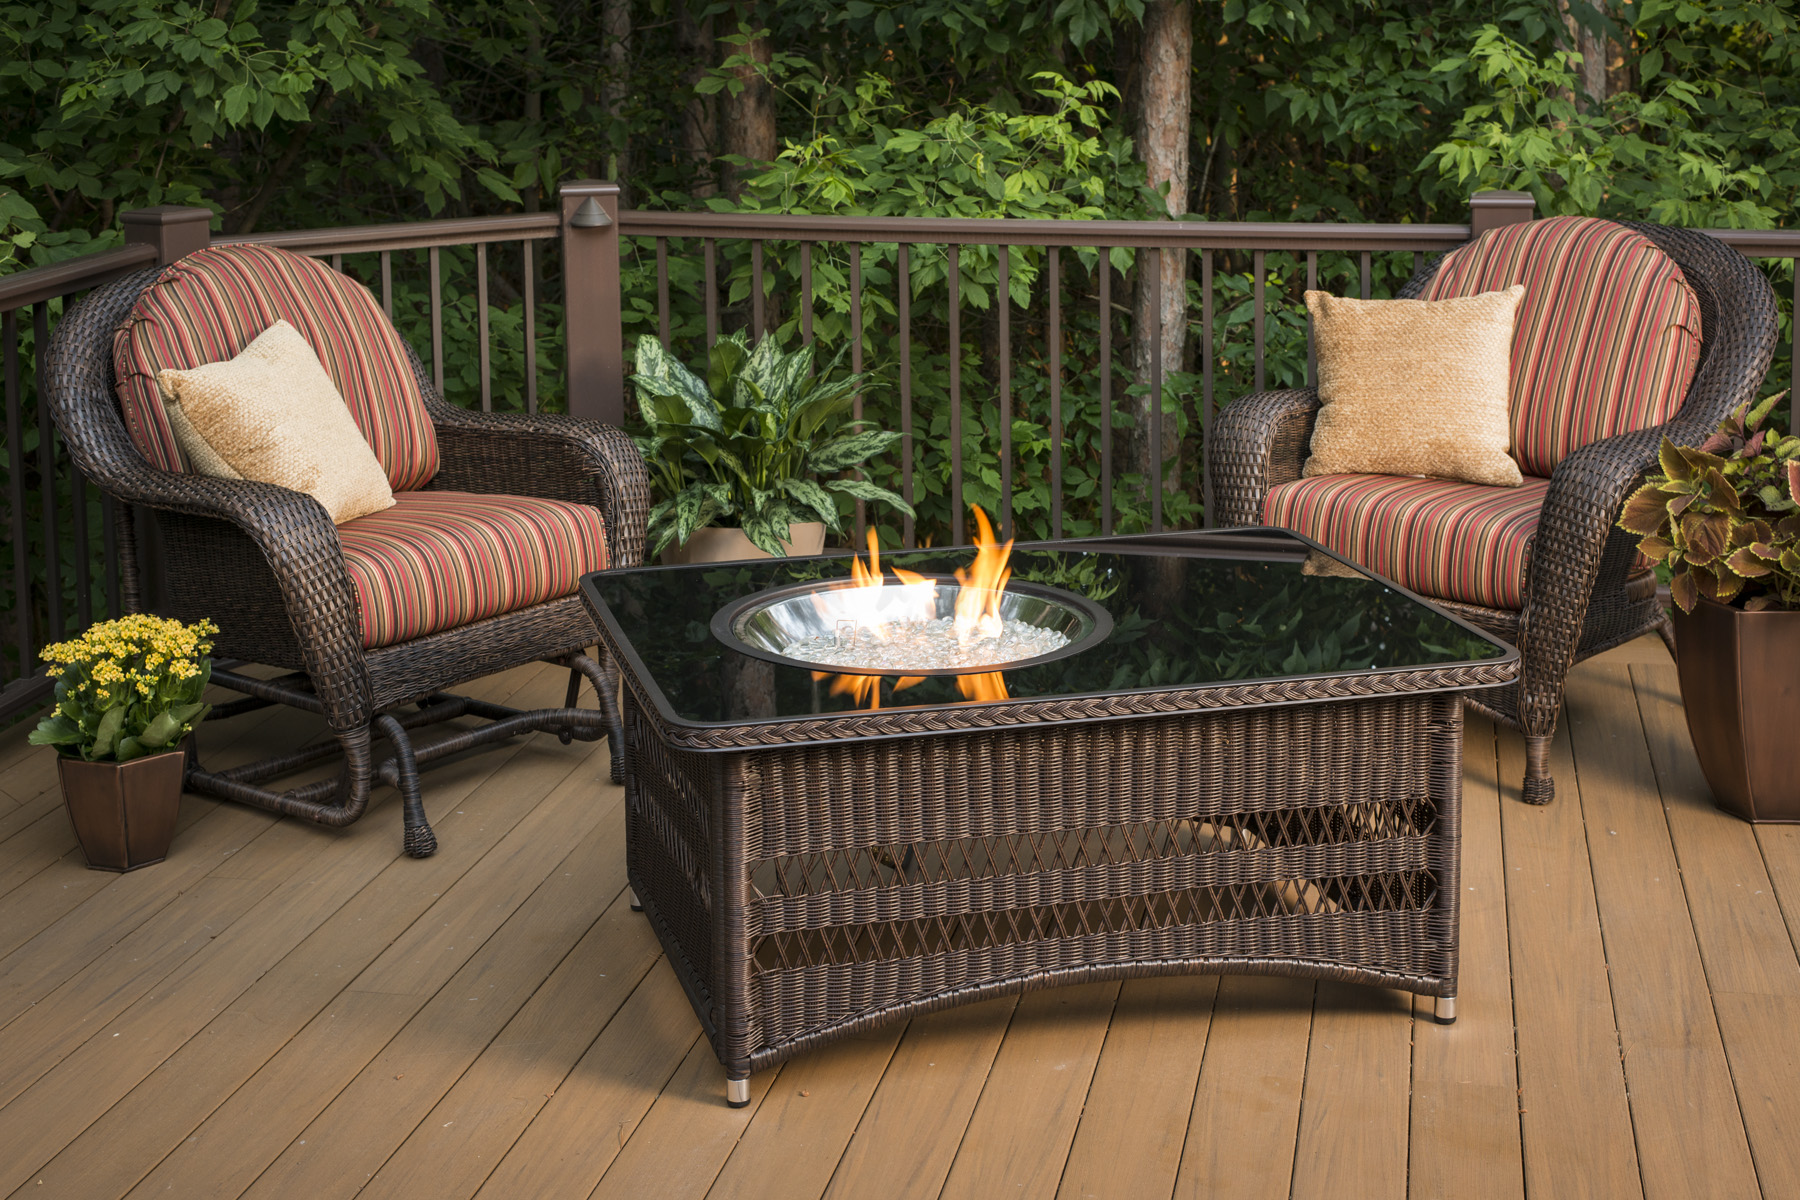 Deck table with fire pit